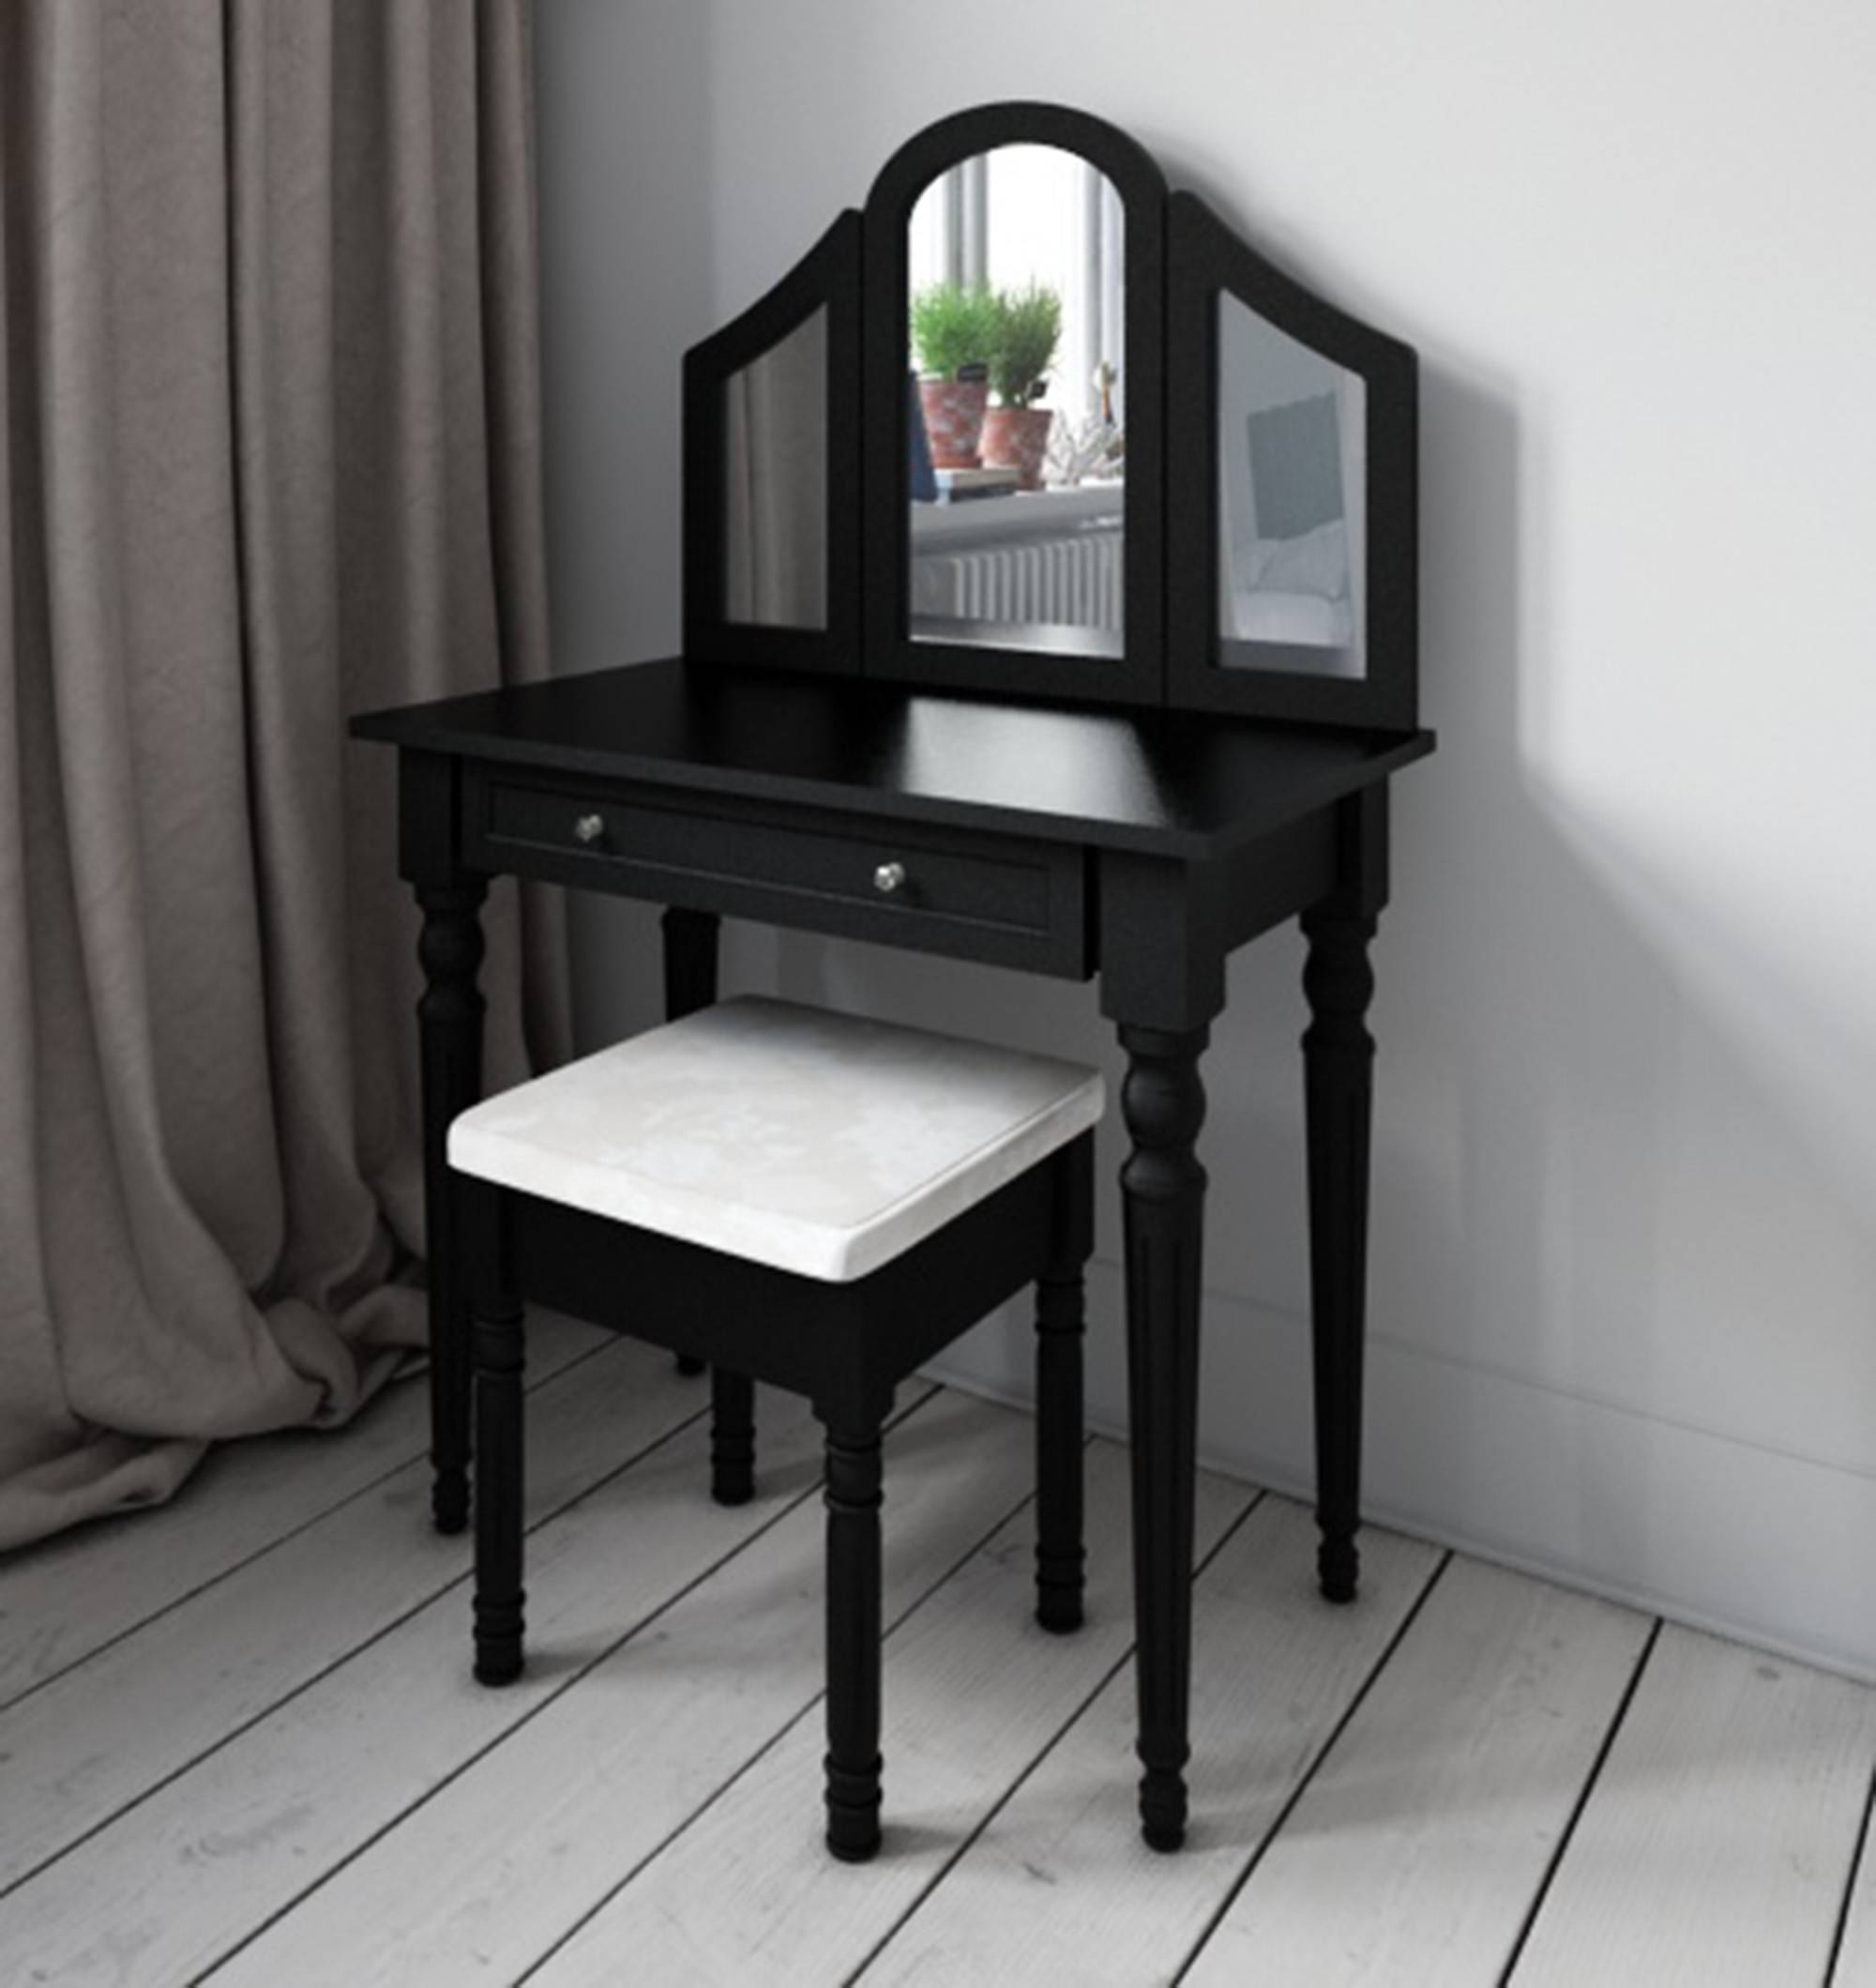 3 Mirrored Black Dressing Table From Abreo Abreo Home Furniture With Black Dressing Mirrors (Photo 8 of 25)